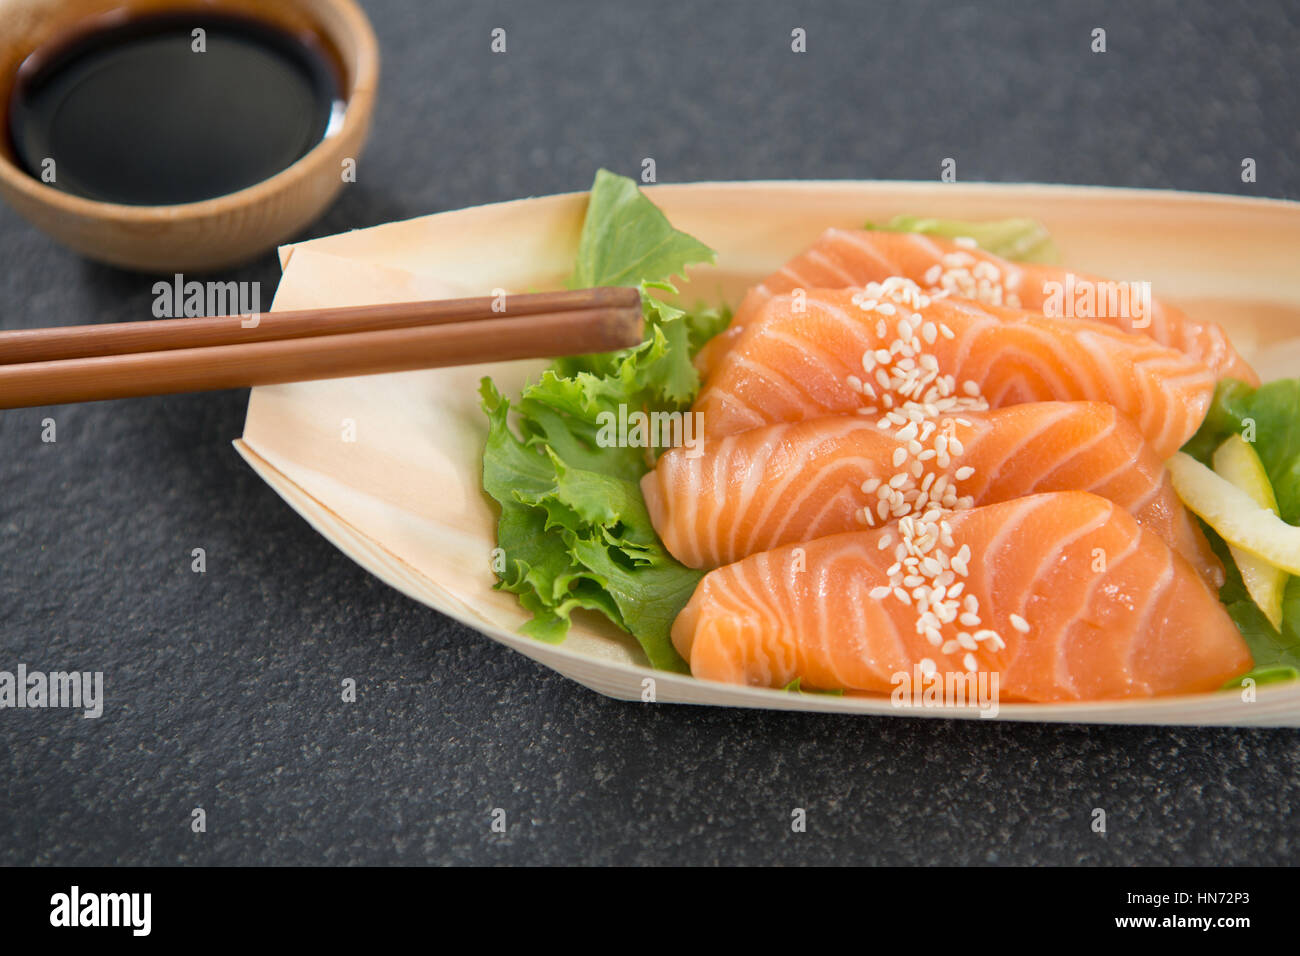 Sushi on boat shaped plate with chopsticks and sauce - Stock Image